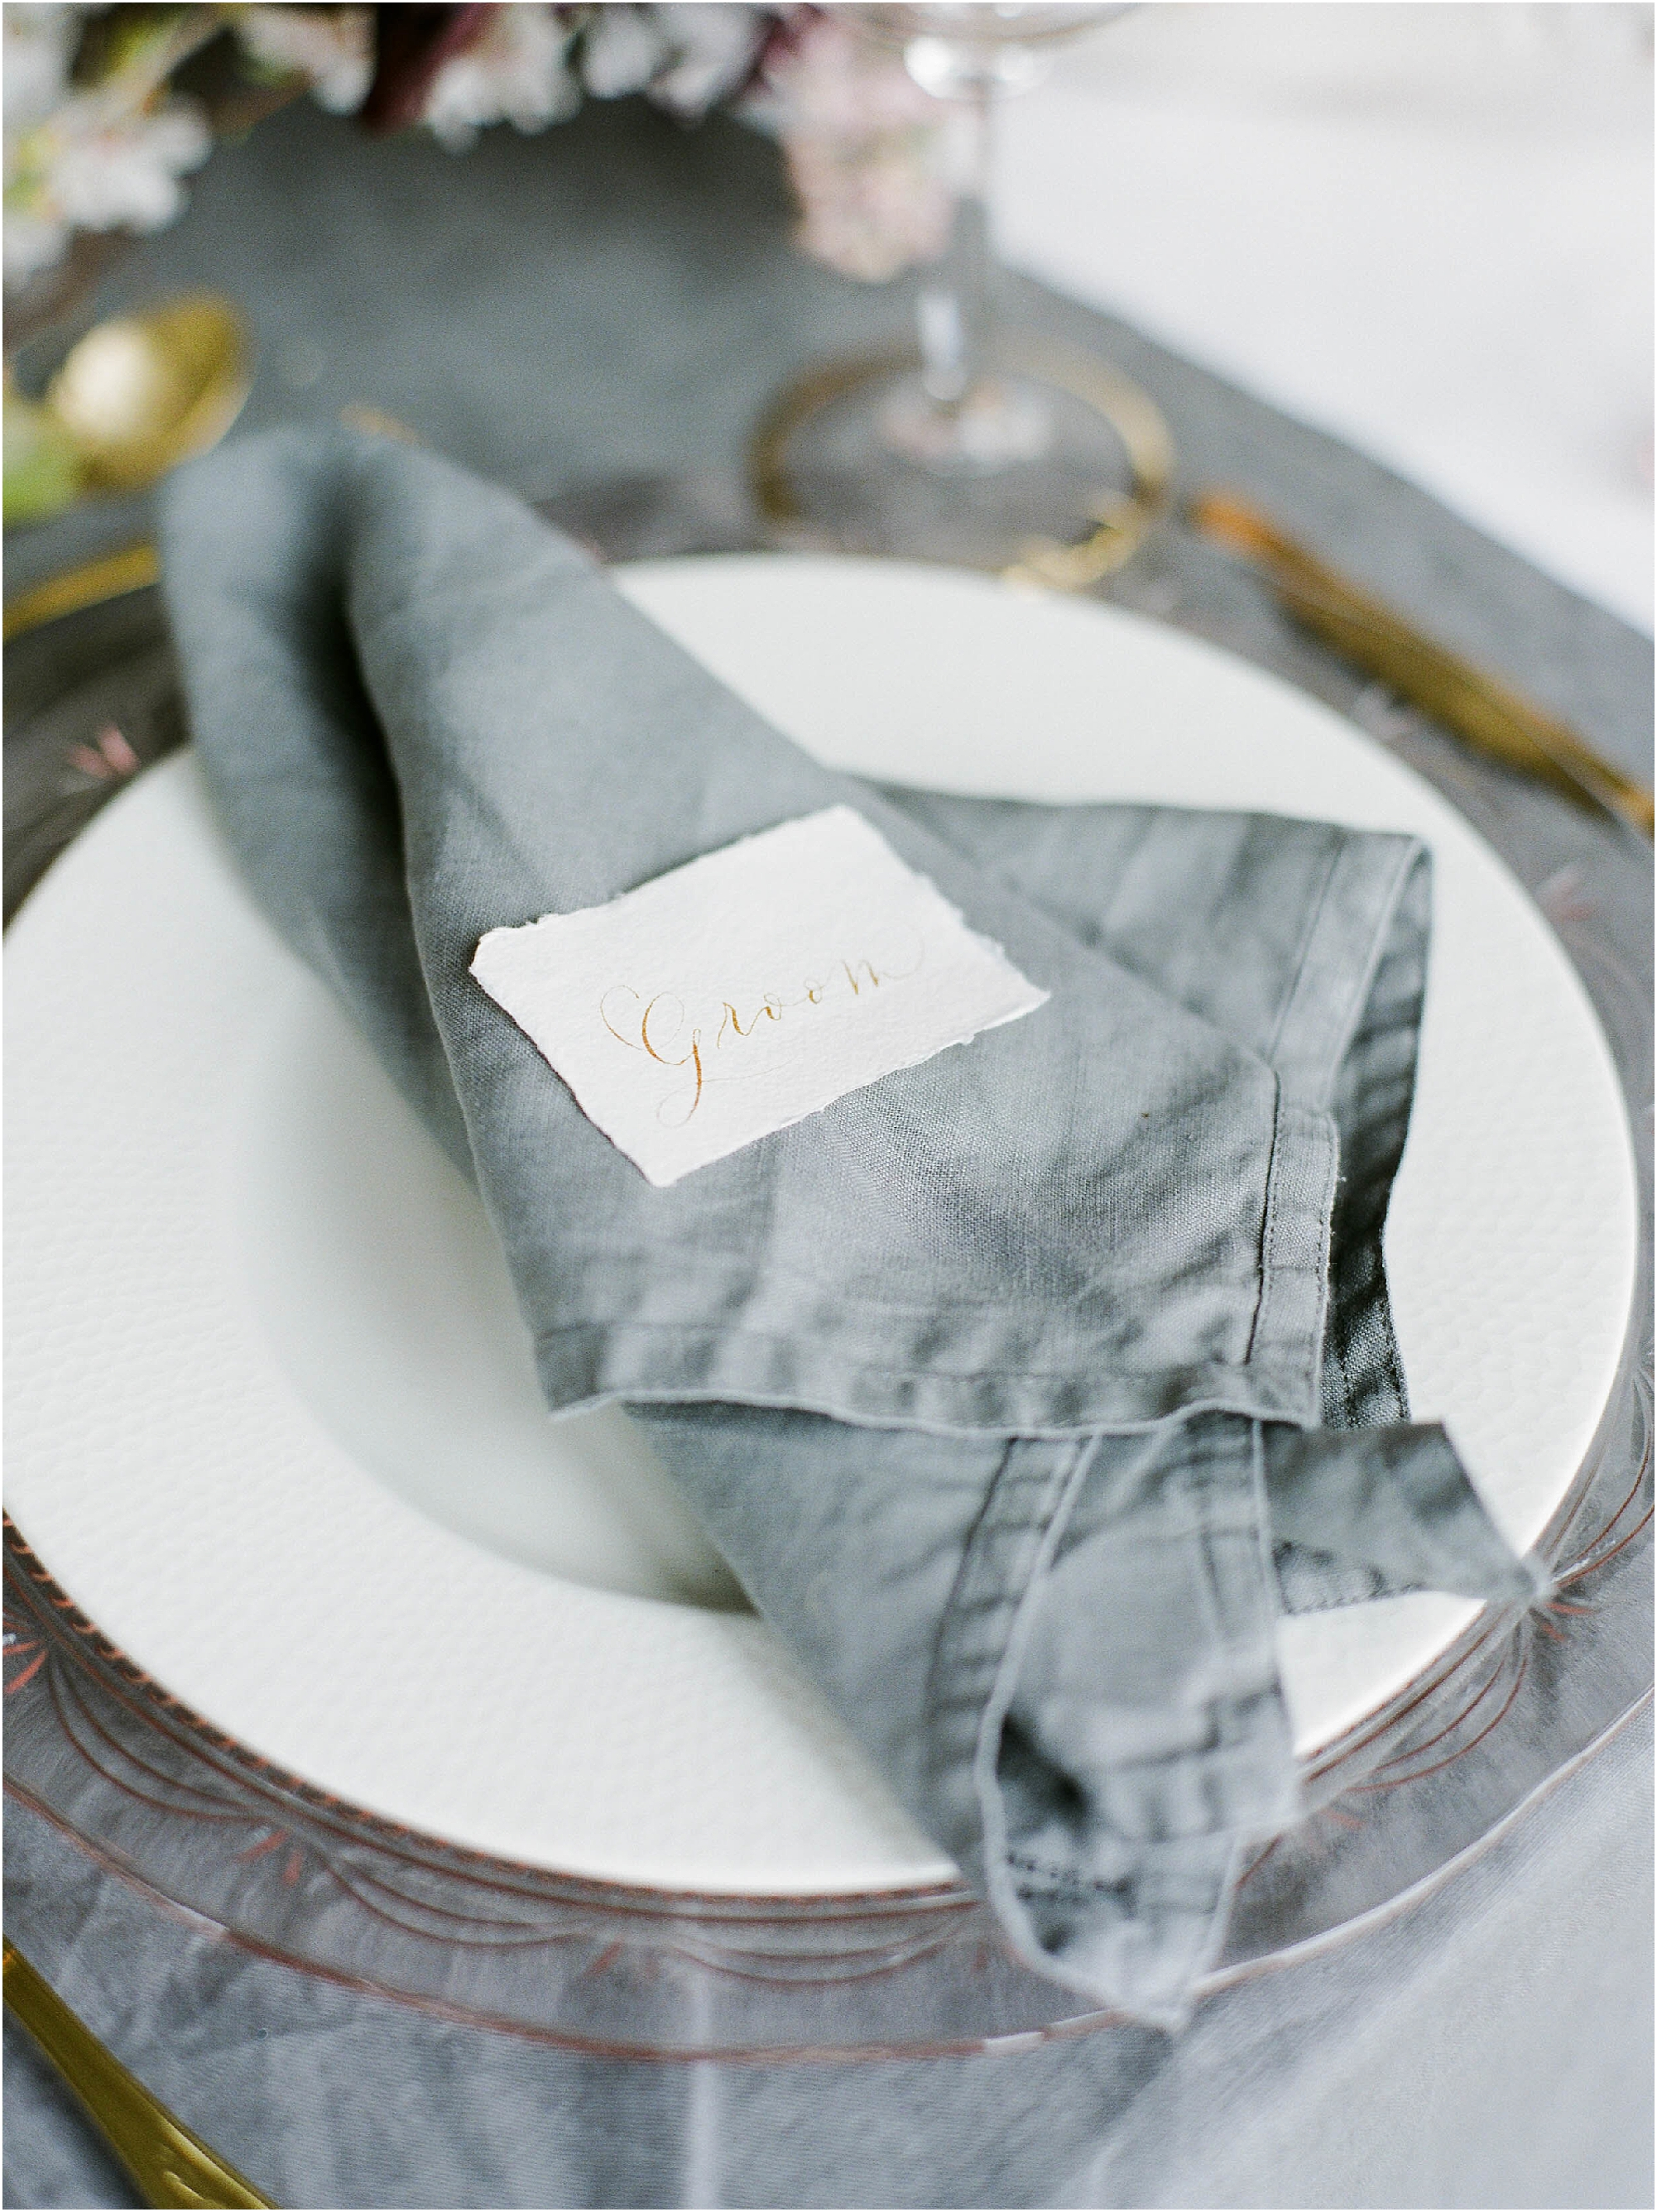 Groom table place name on grey linen napkin